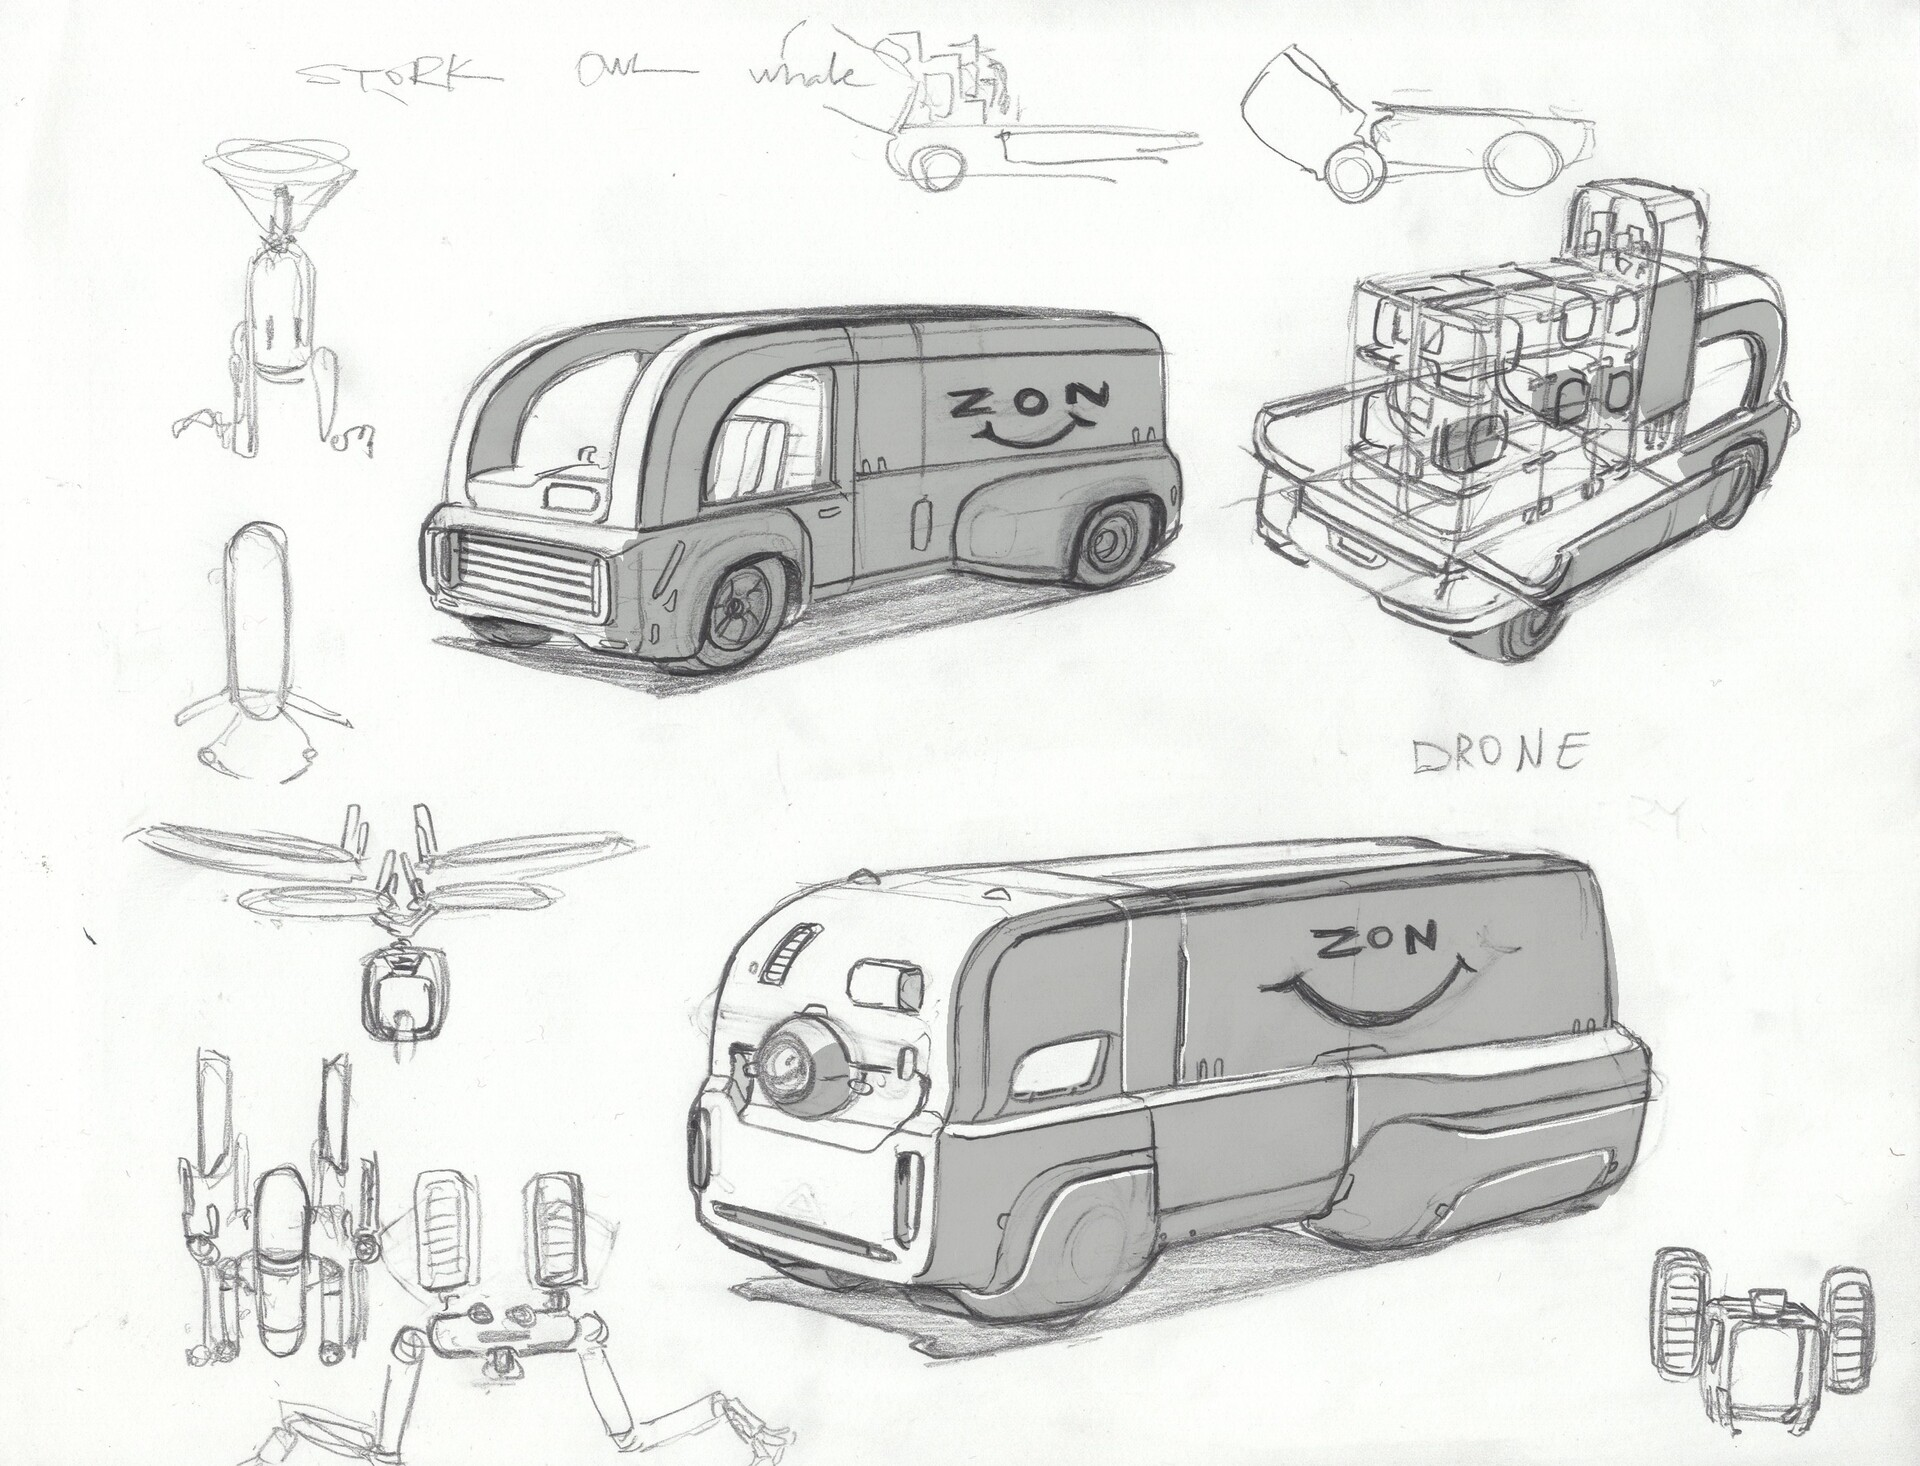 An autonomous van design that goes into neighborhoods and deploys small delivery drones.